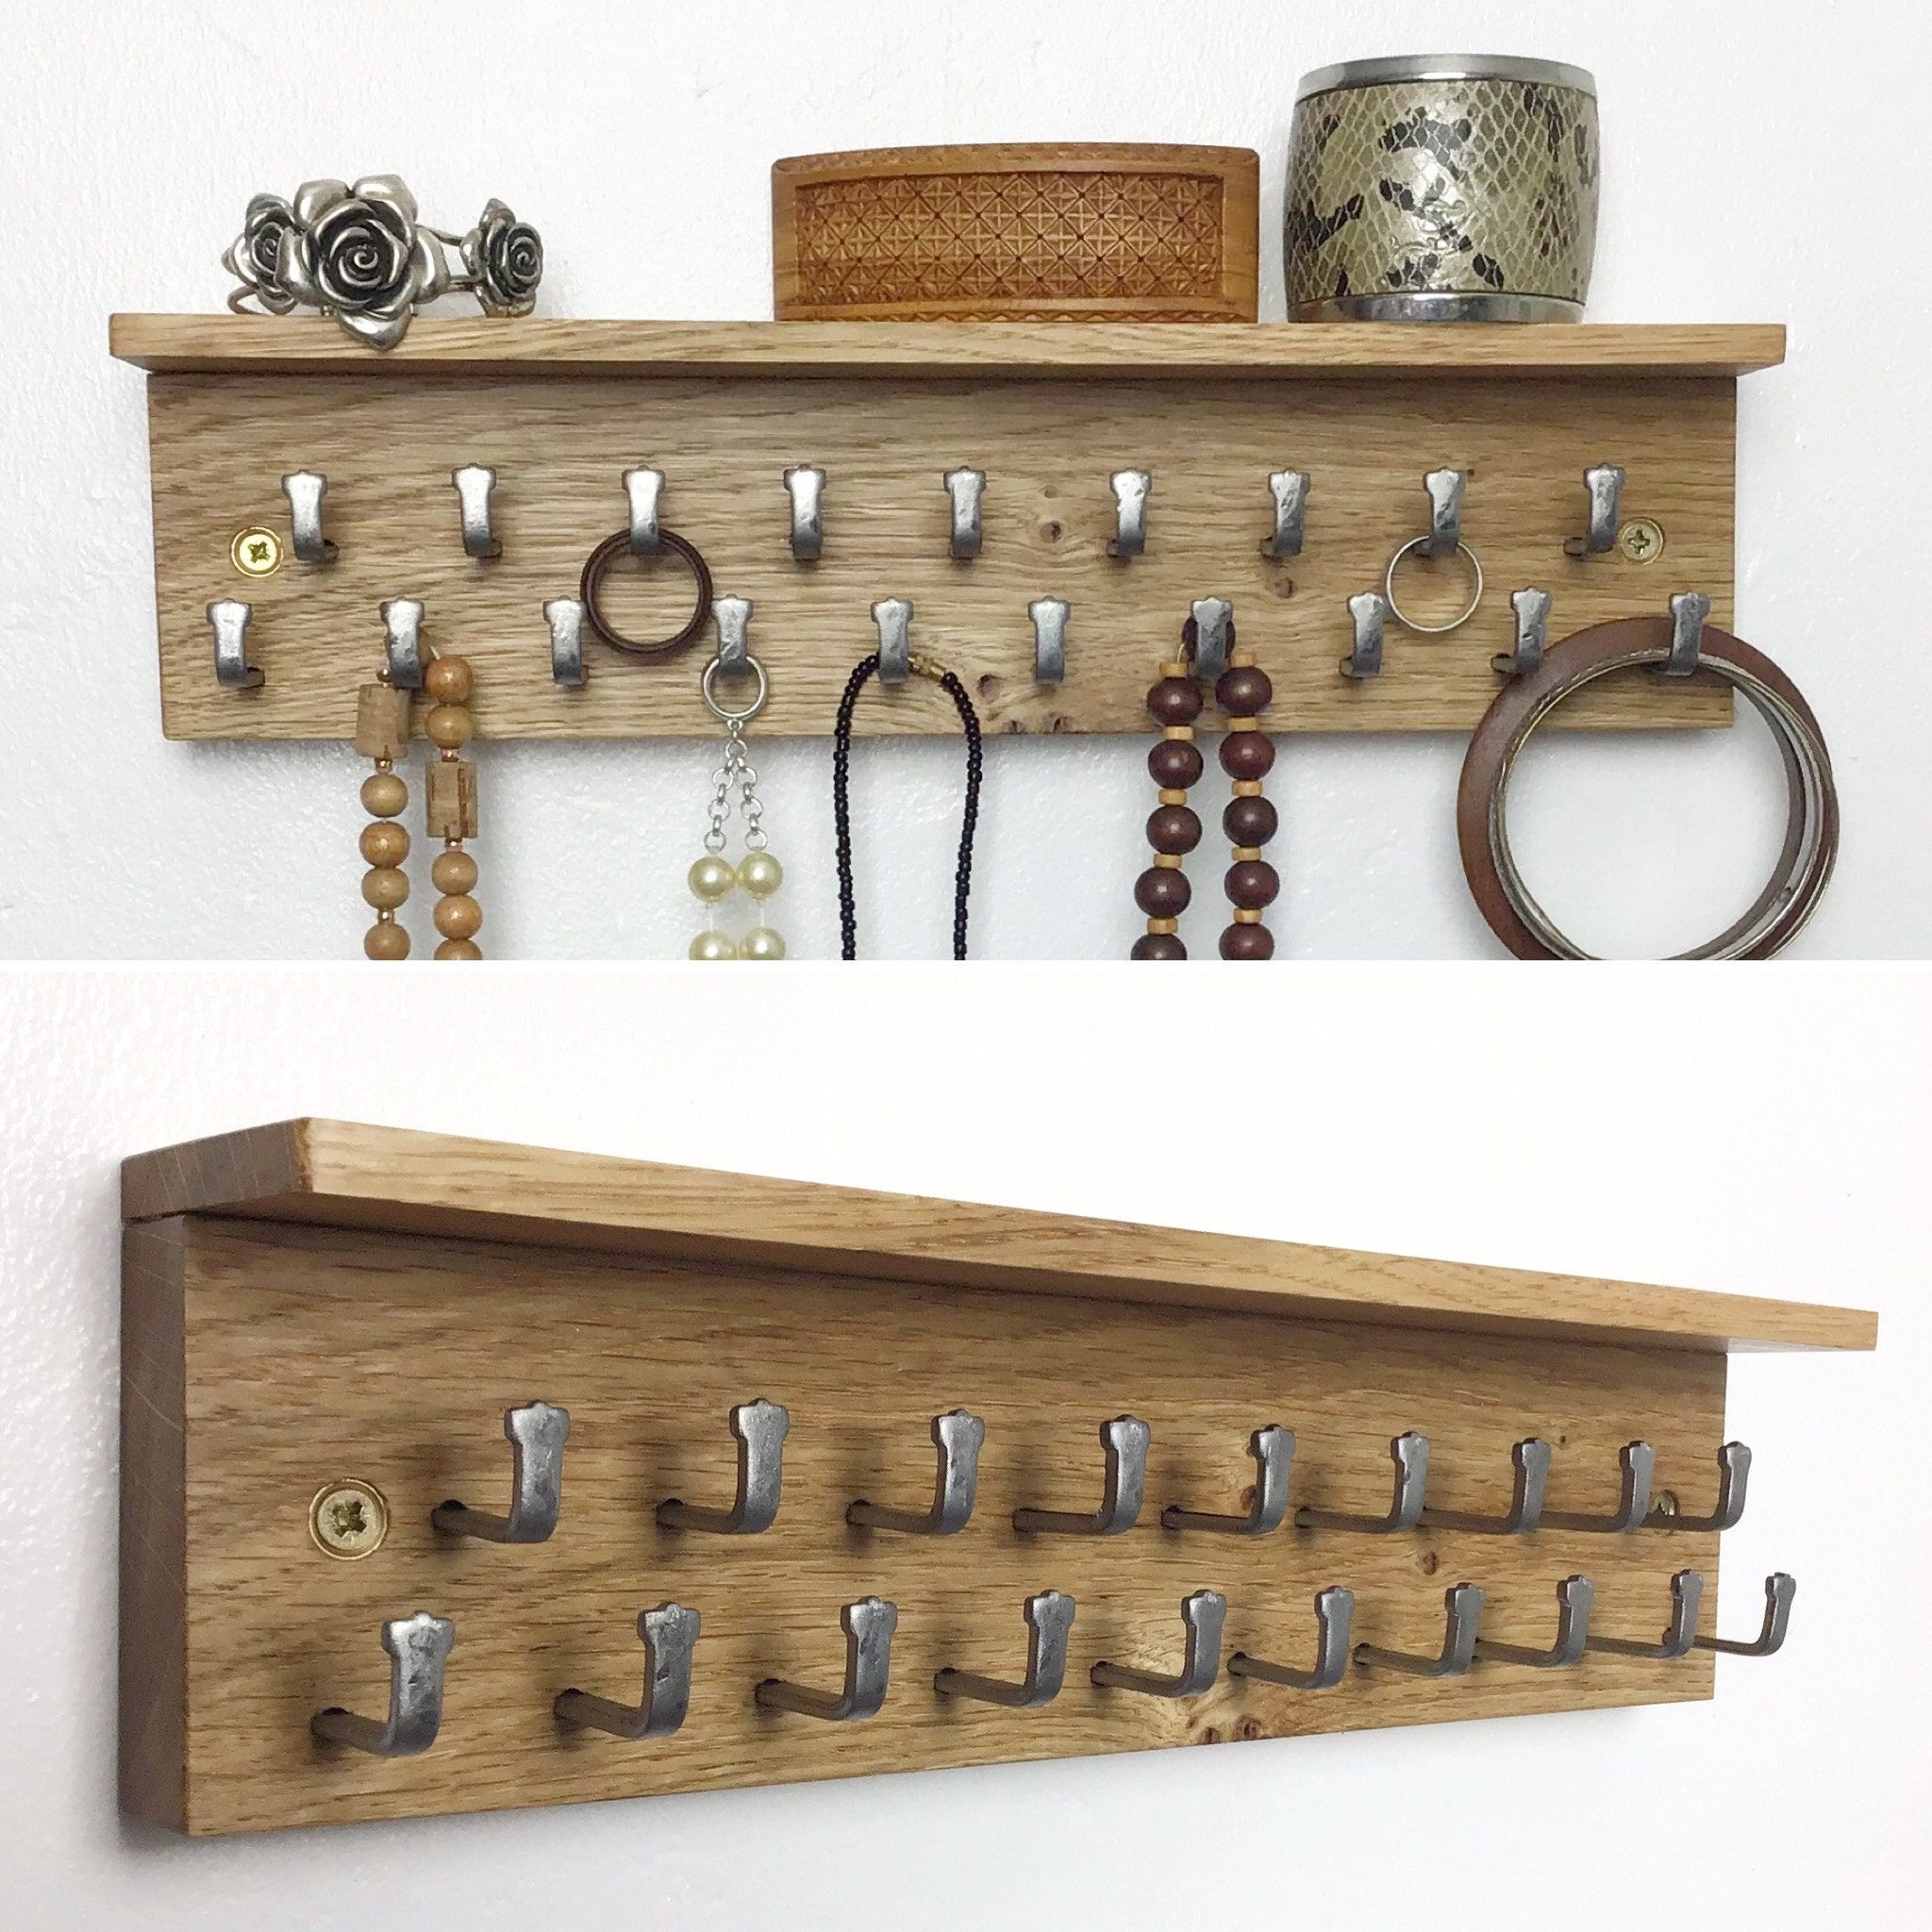 Light Oak jewellery Display Rack with shelf by gorlech UK